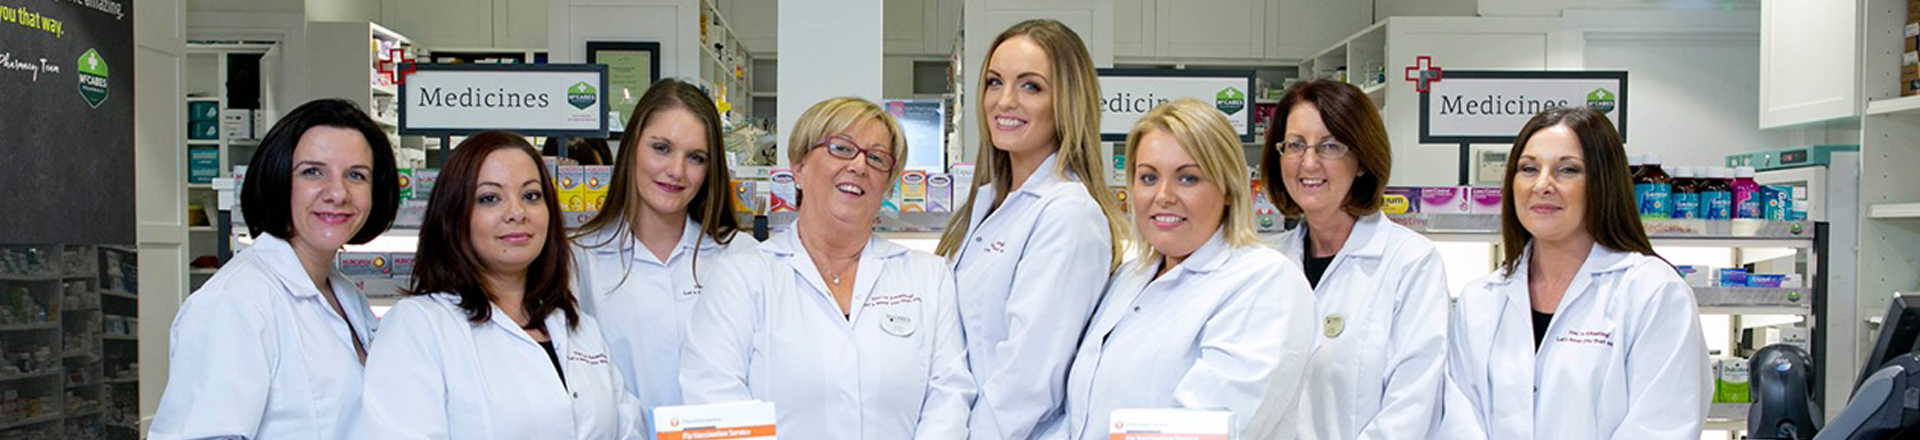 Careers with McCabes Pharmacy